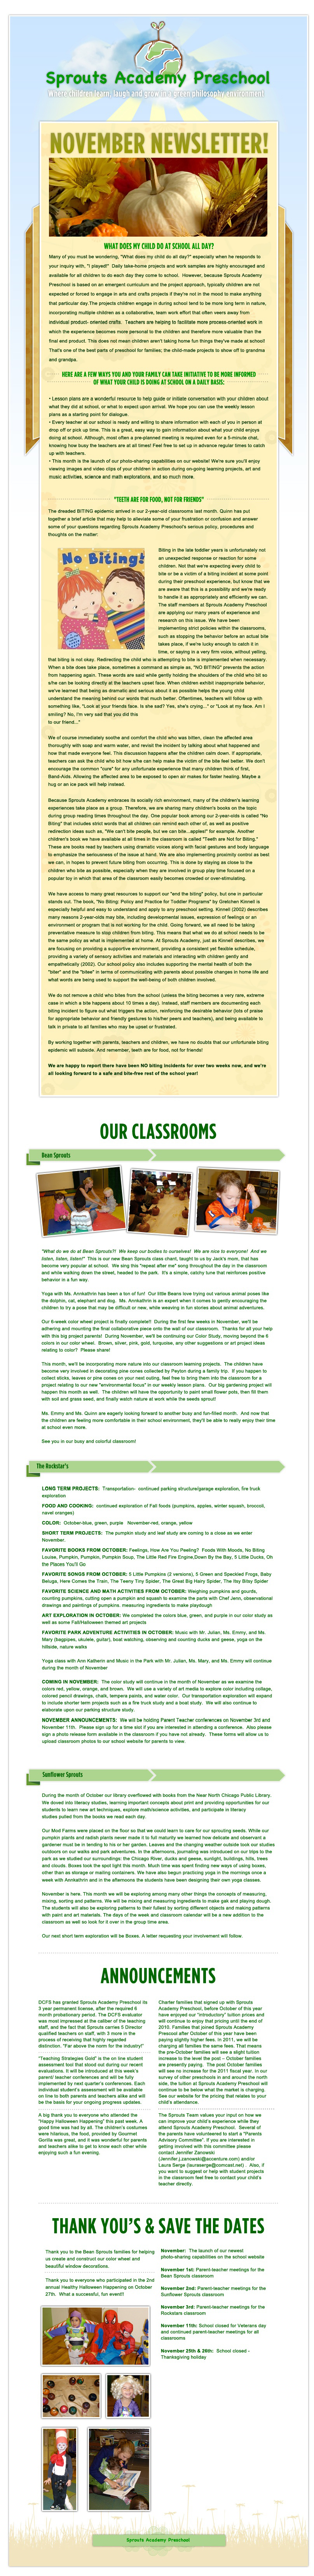 Sprouts Academy Preschool November Newsletter